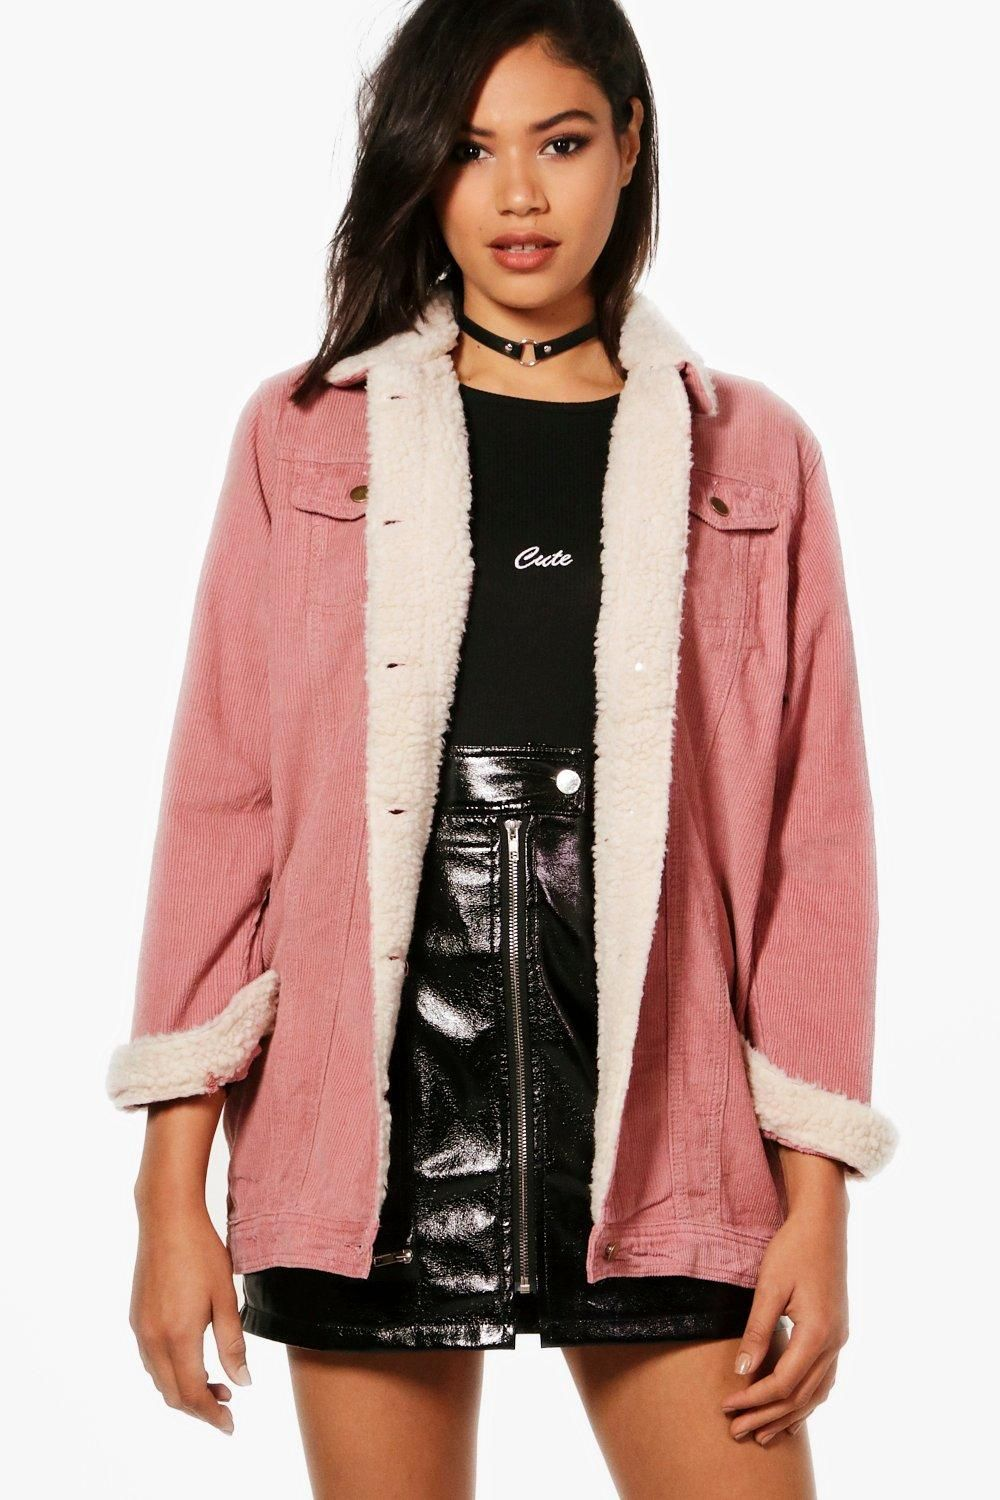 9be657edee5f8 ... latest coats and jackets and get out-there with your outerwear Breathe  life into your new season layering with the latest coats and jackets from  boohoo.